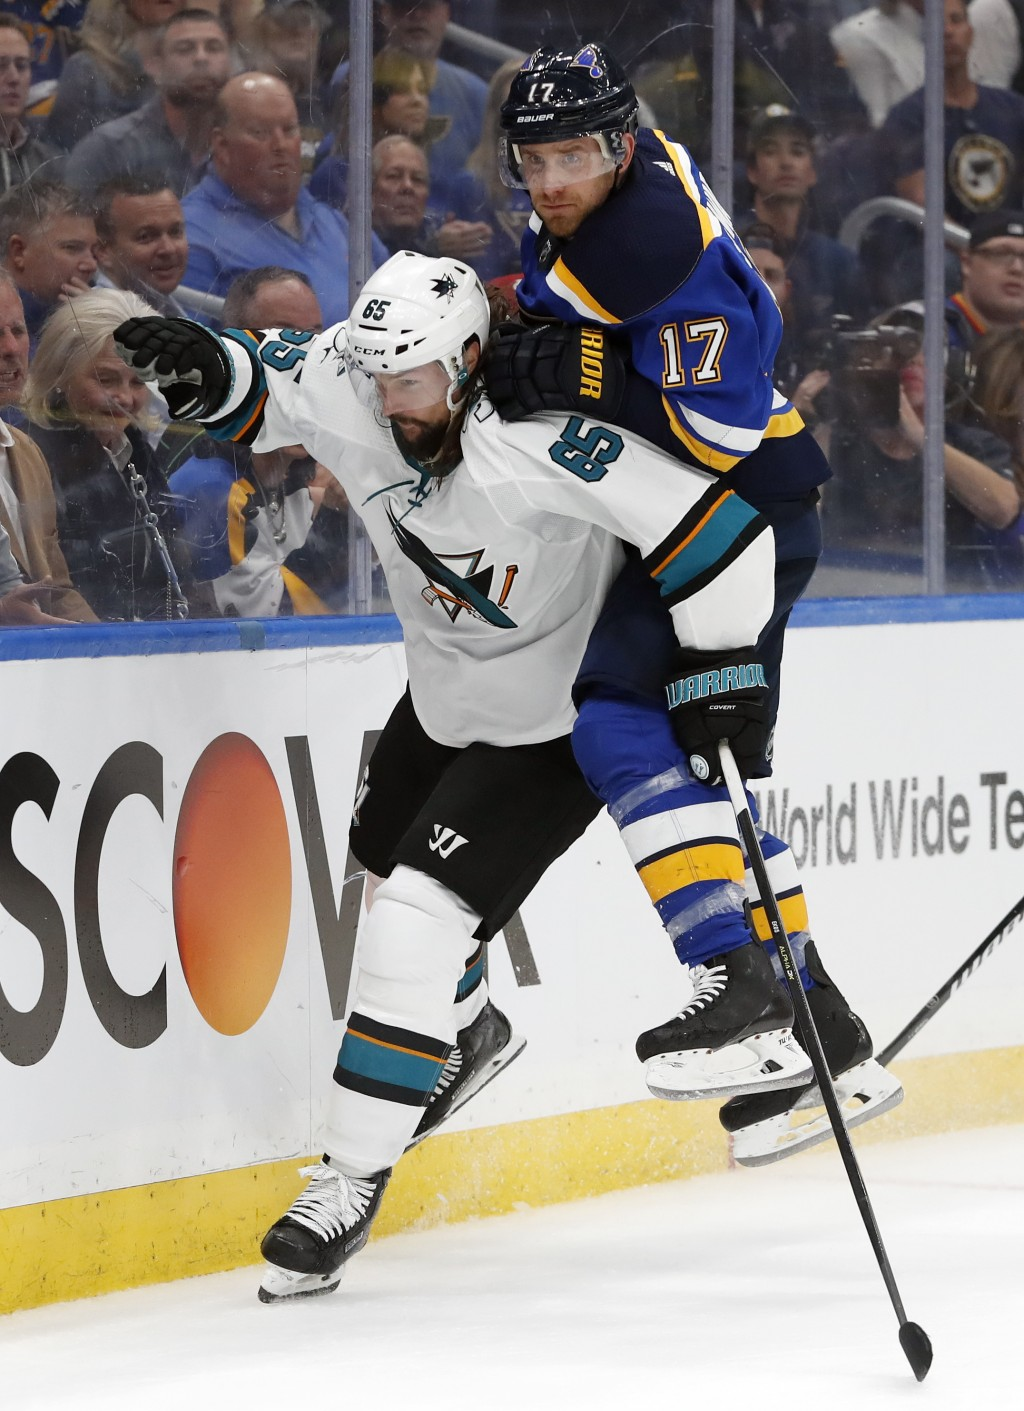 St. Louis Blues left wing Jaden Schwartz (17) lands on the back of San Jose Sharks defenseman Erik Karlsson (65), of Sweden, during the third period i